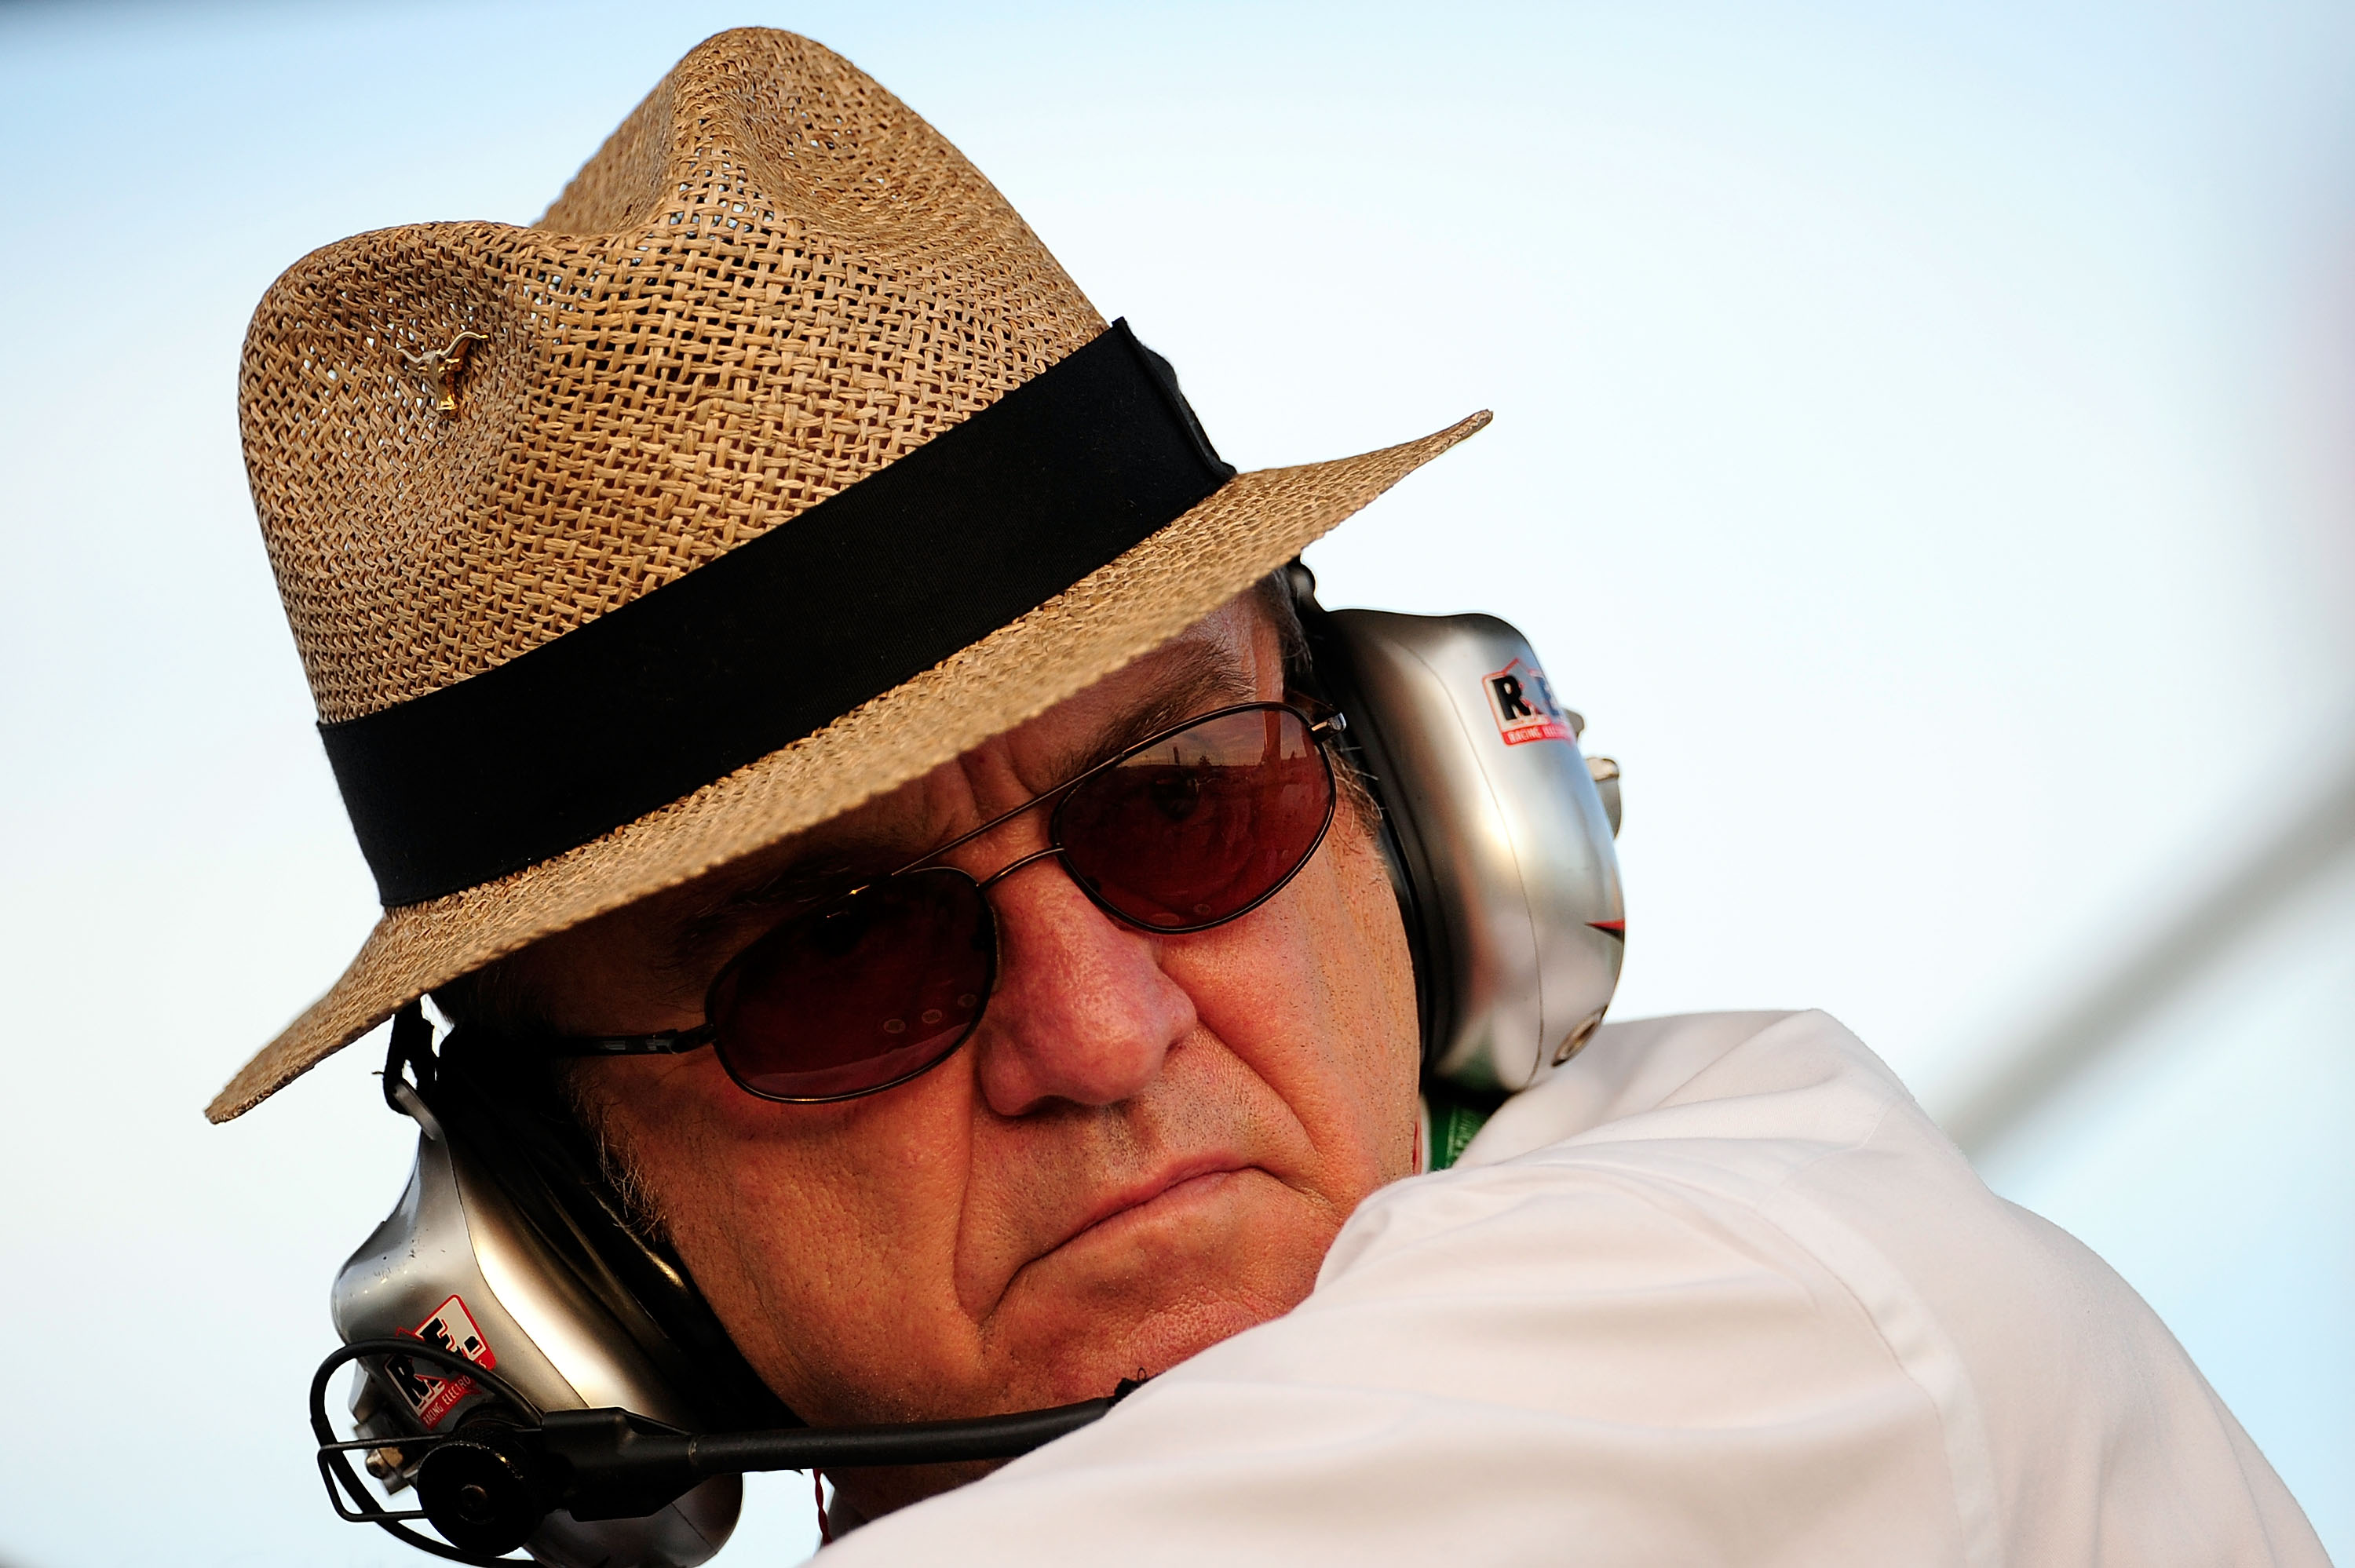 HOMESTEAD, FL - NOVEMBER 21:  Team owner Jack Roush looks on from the pit box prior to the start of the NASCAR Nationwide Series Ford 300 at Homestead-Miami Speedway on November 21, 2009 in Homestead, Florida.  (Photo by Sam Greenwood/Getty Images)